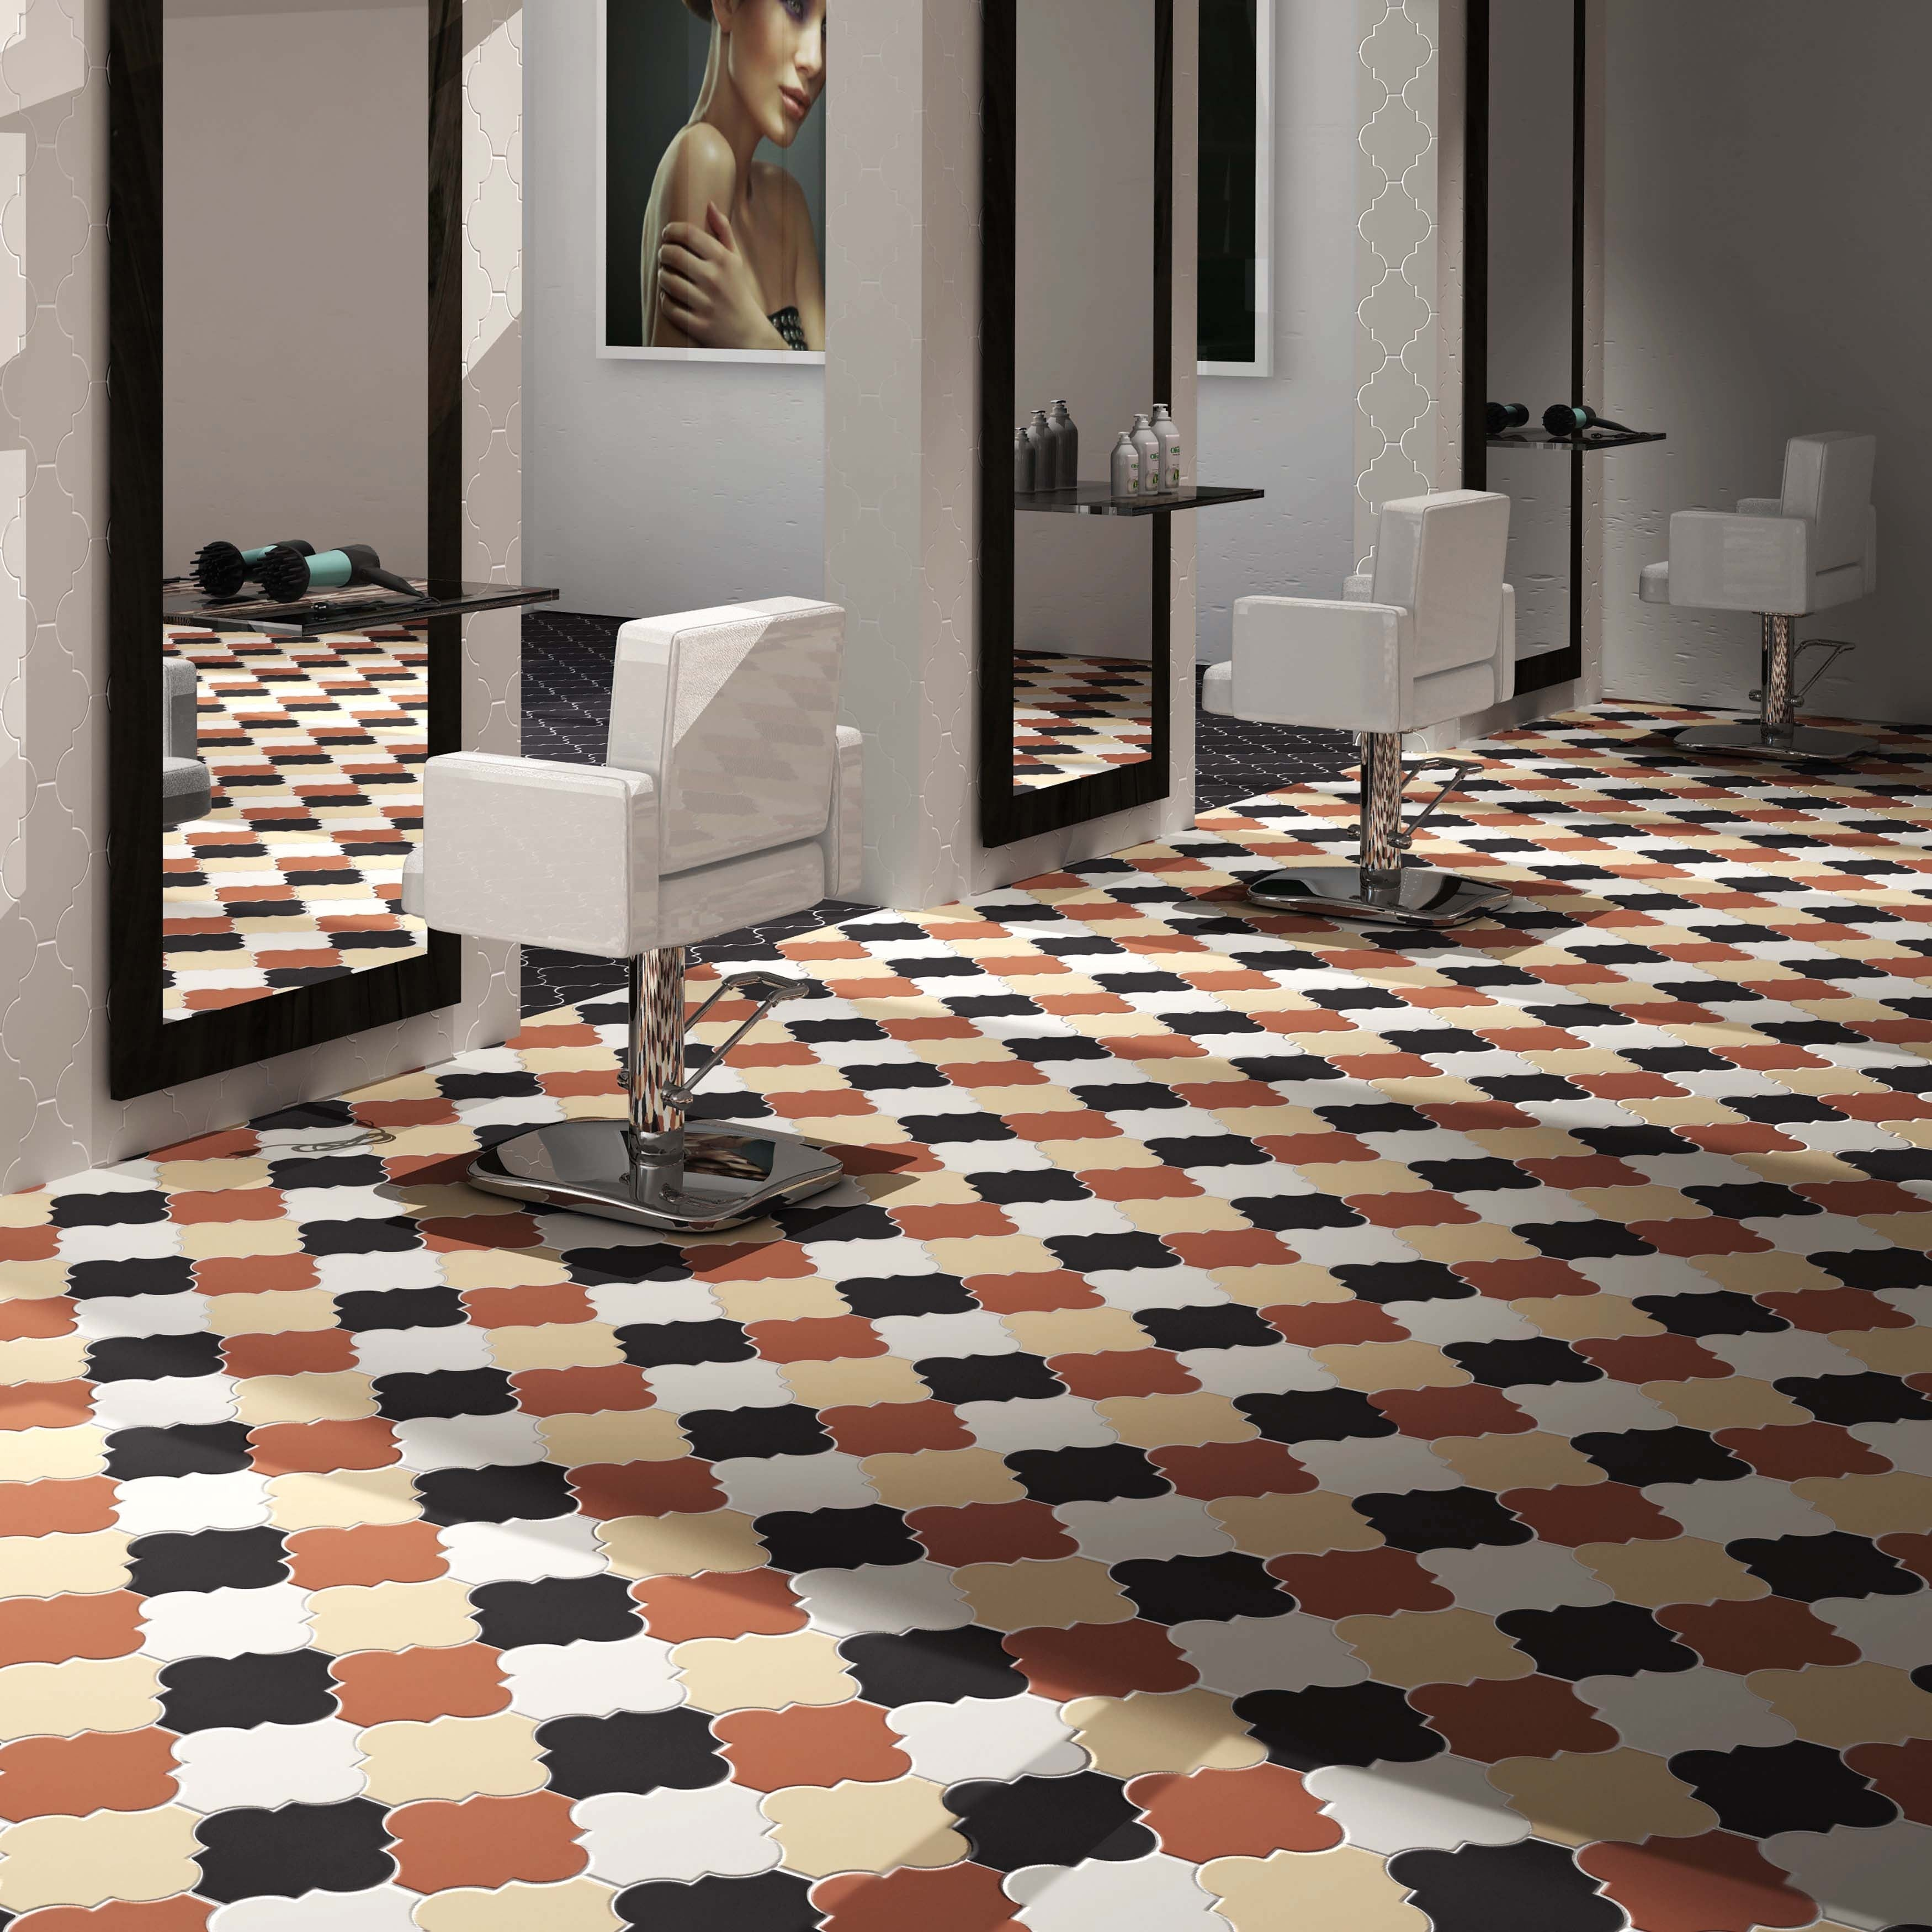 Cotto floor tile 8x8 the ground beneath her feet somertile 8x8 inch morocco provenzale cotto porcelain floor and wall tile 16 tiles dailygadgetfo Images